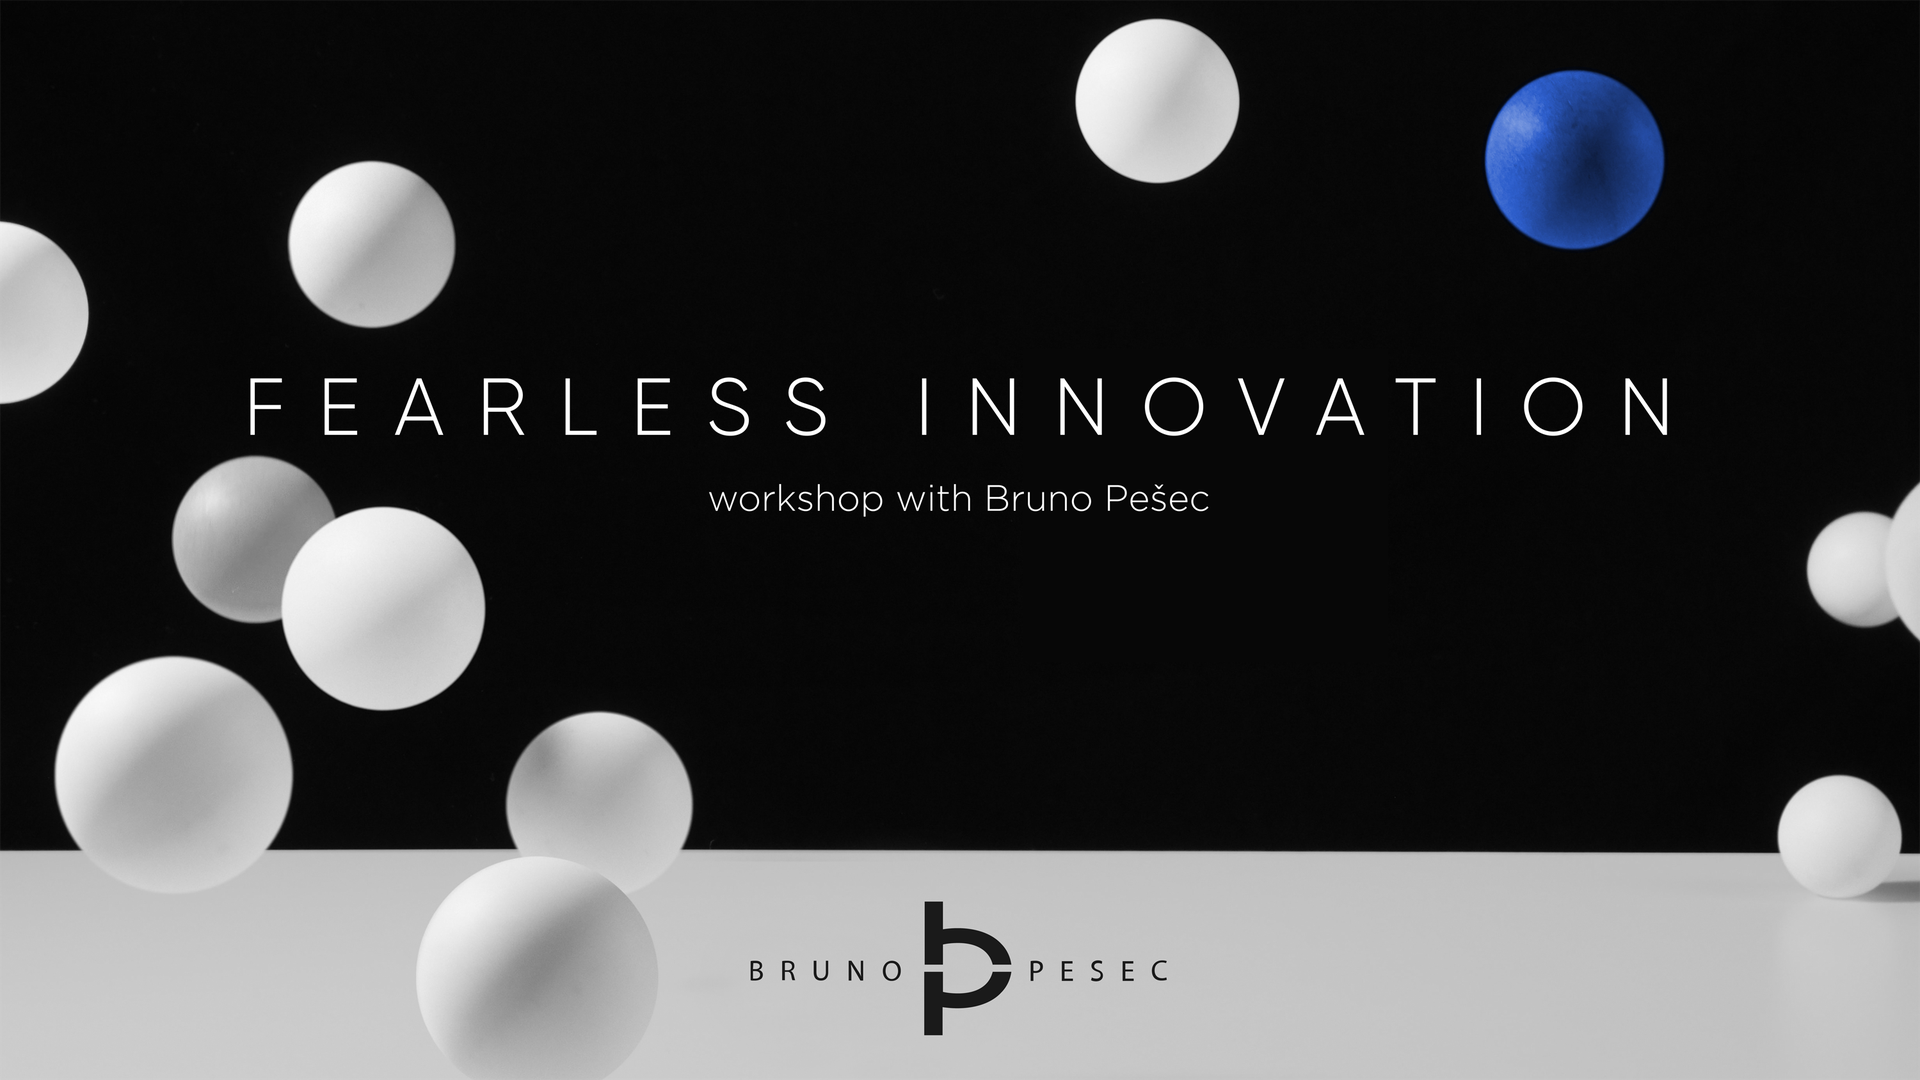 Fearless Innovation Workshop